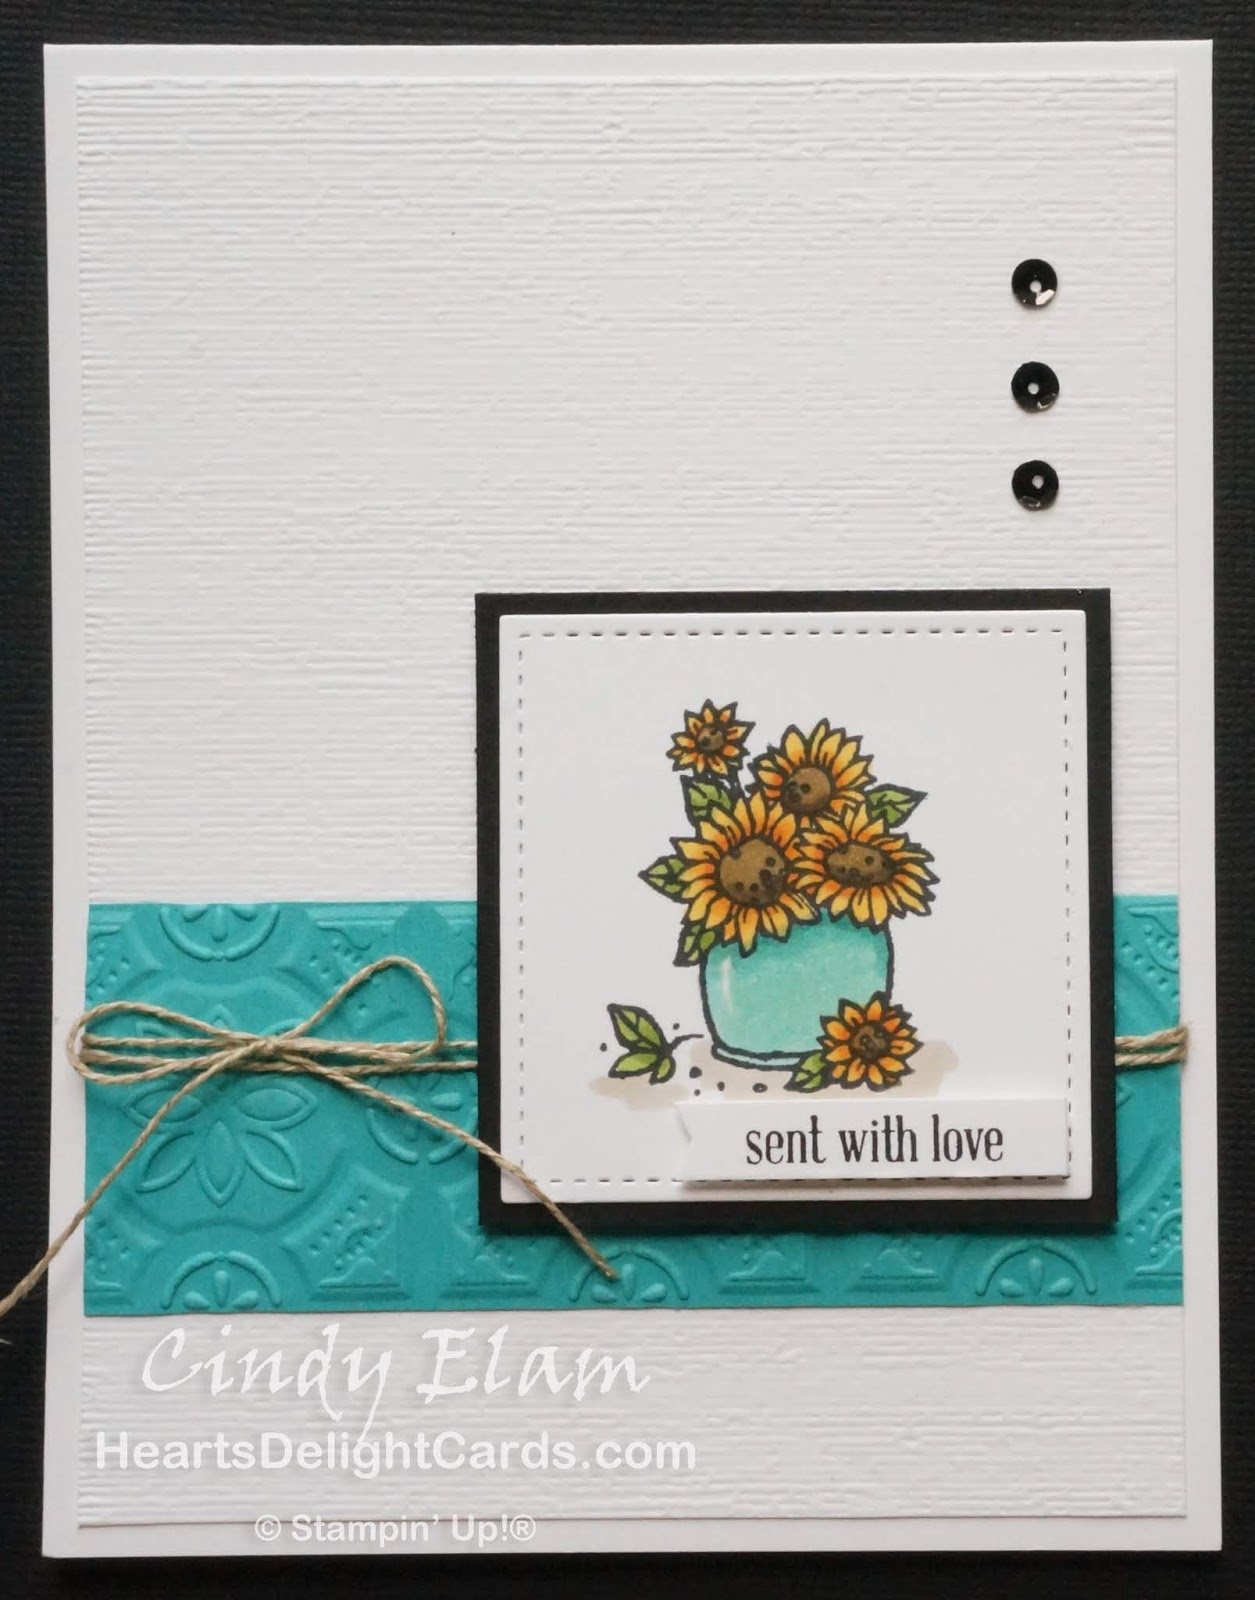 Hearts Delight Cards Many Blessings Winter Summer An Offer